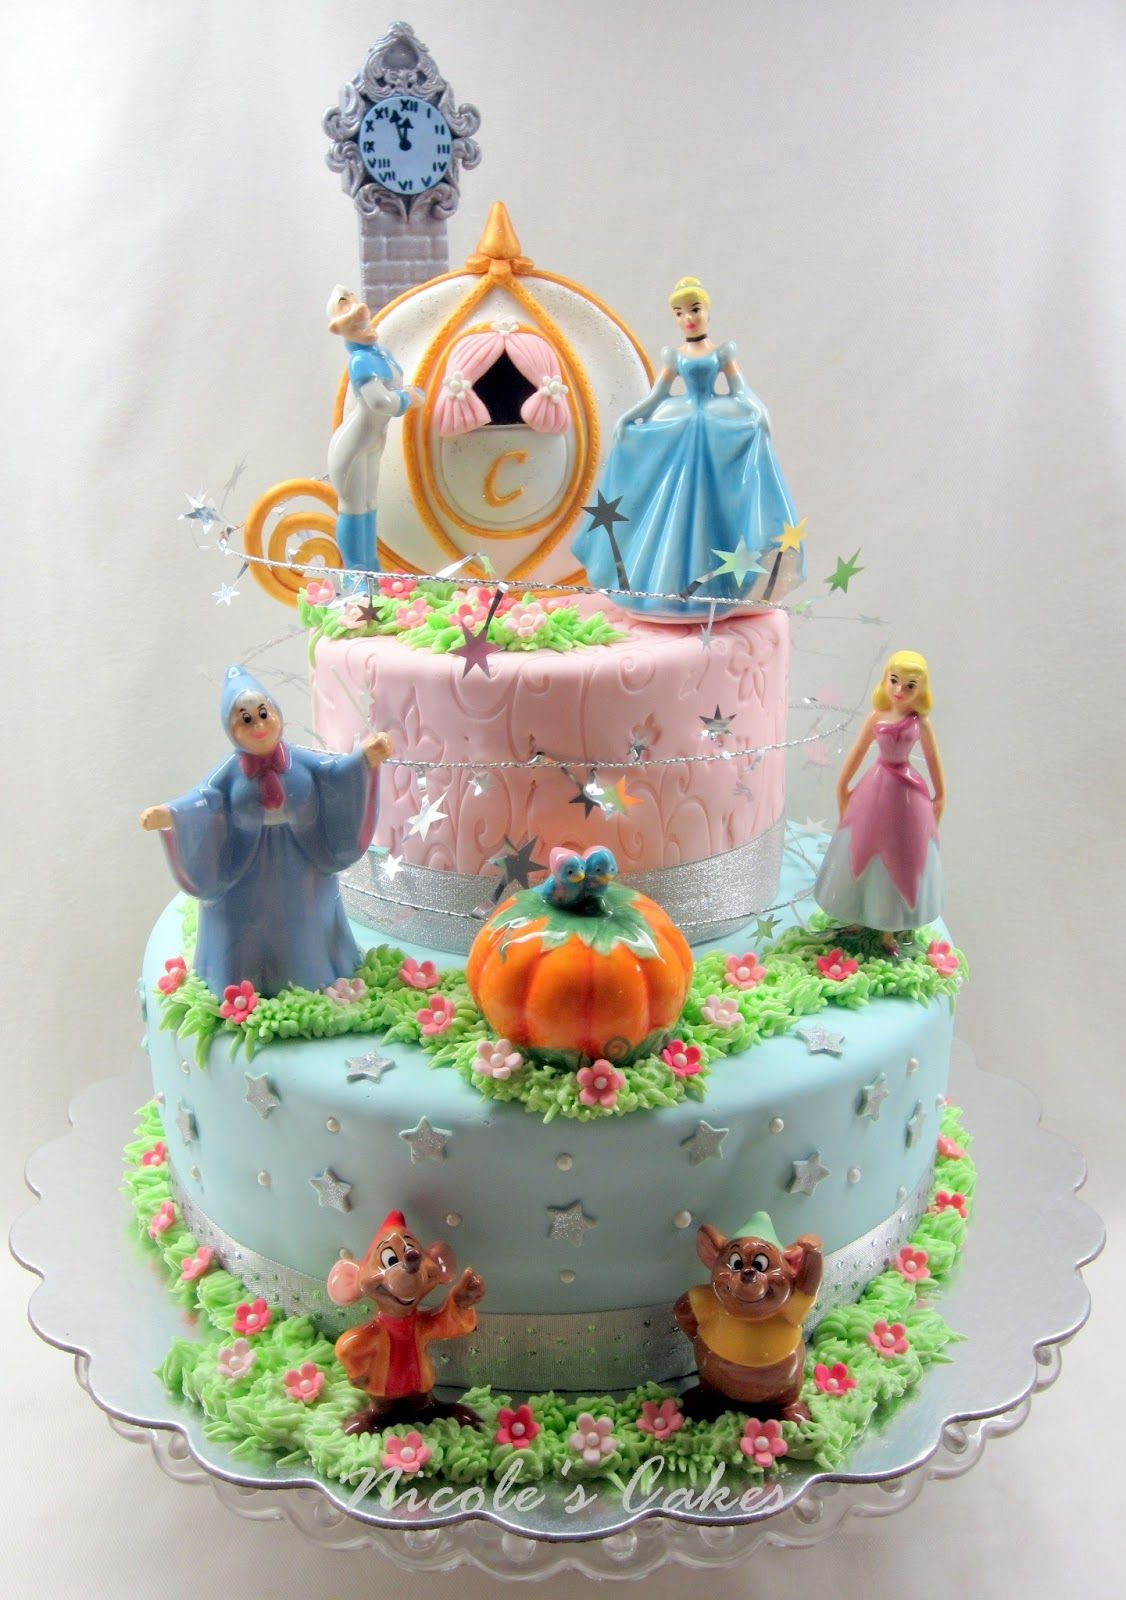 Swell The Cinderella Story A Birthday Cake Gateaux Cendrillon Birthday Cards Printable Riciscafe Filternl